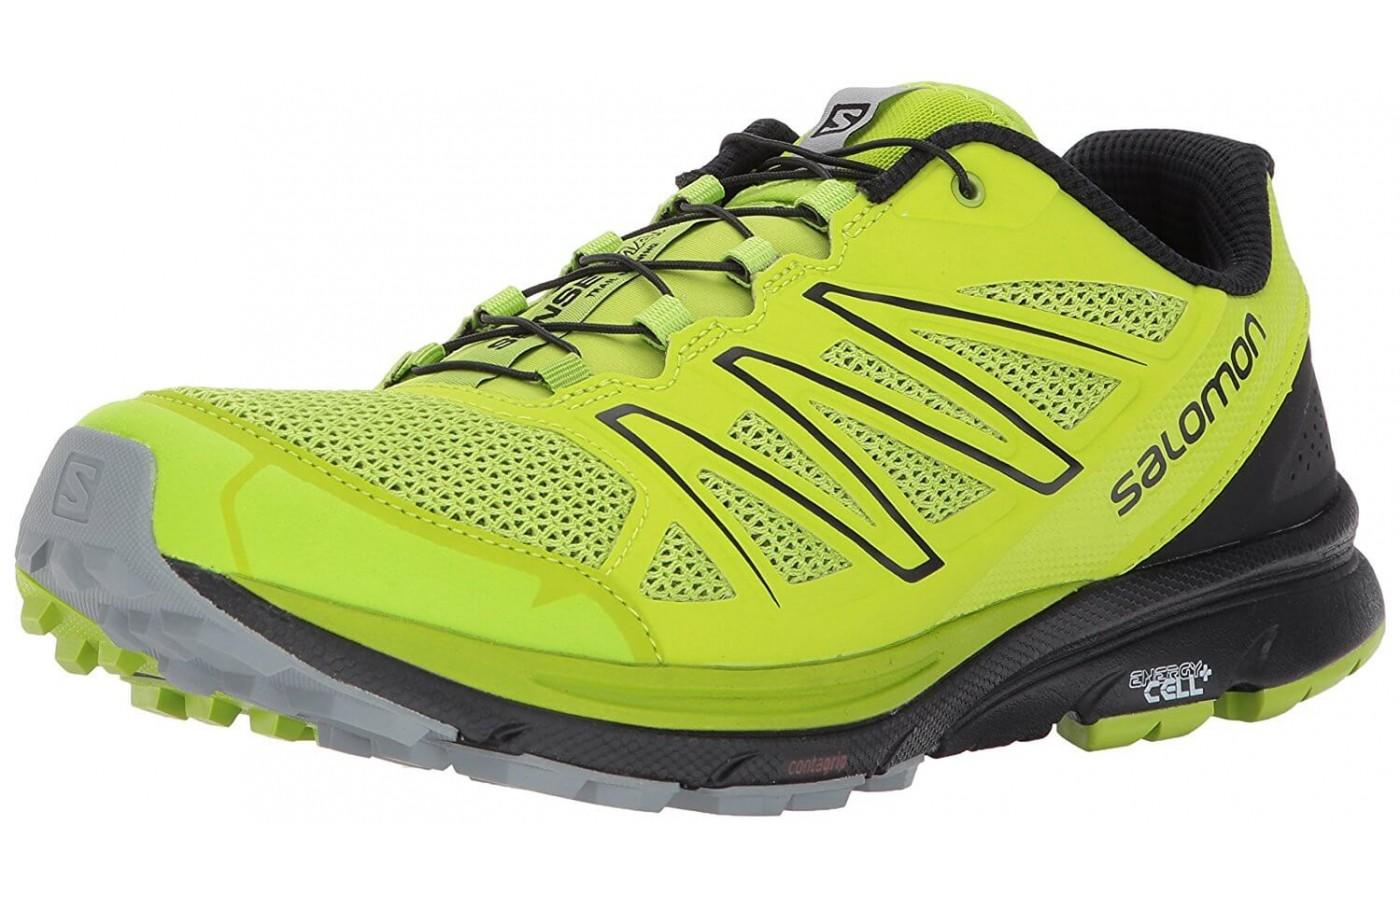 The upper of the Salomon Sense Marin is both breathable and protective